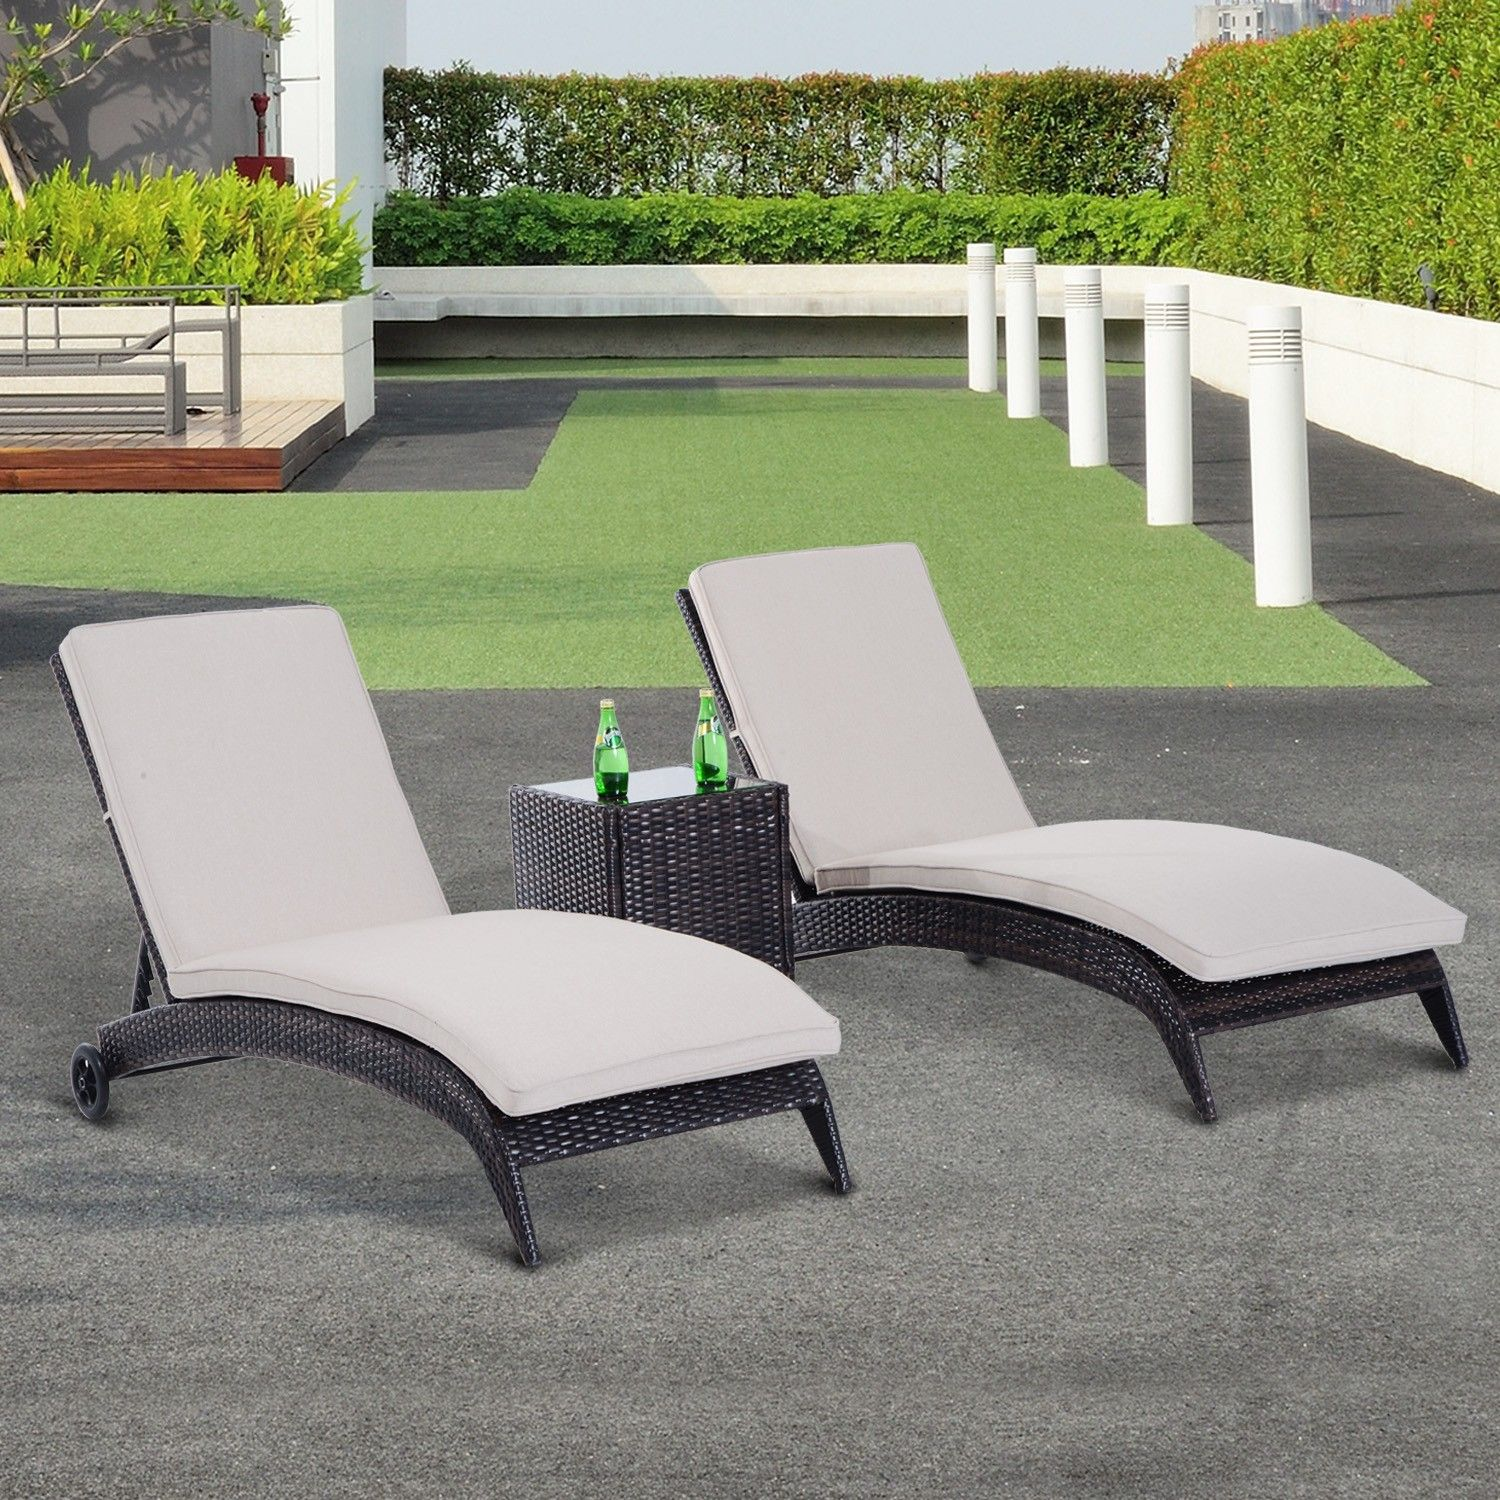 outsunny rattan lounger 3pc sun wicker patio day bed home garden reclining furniture seat brown